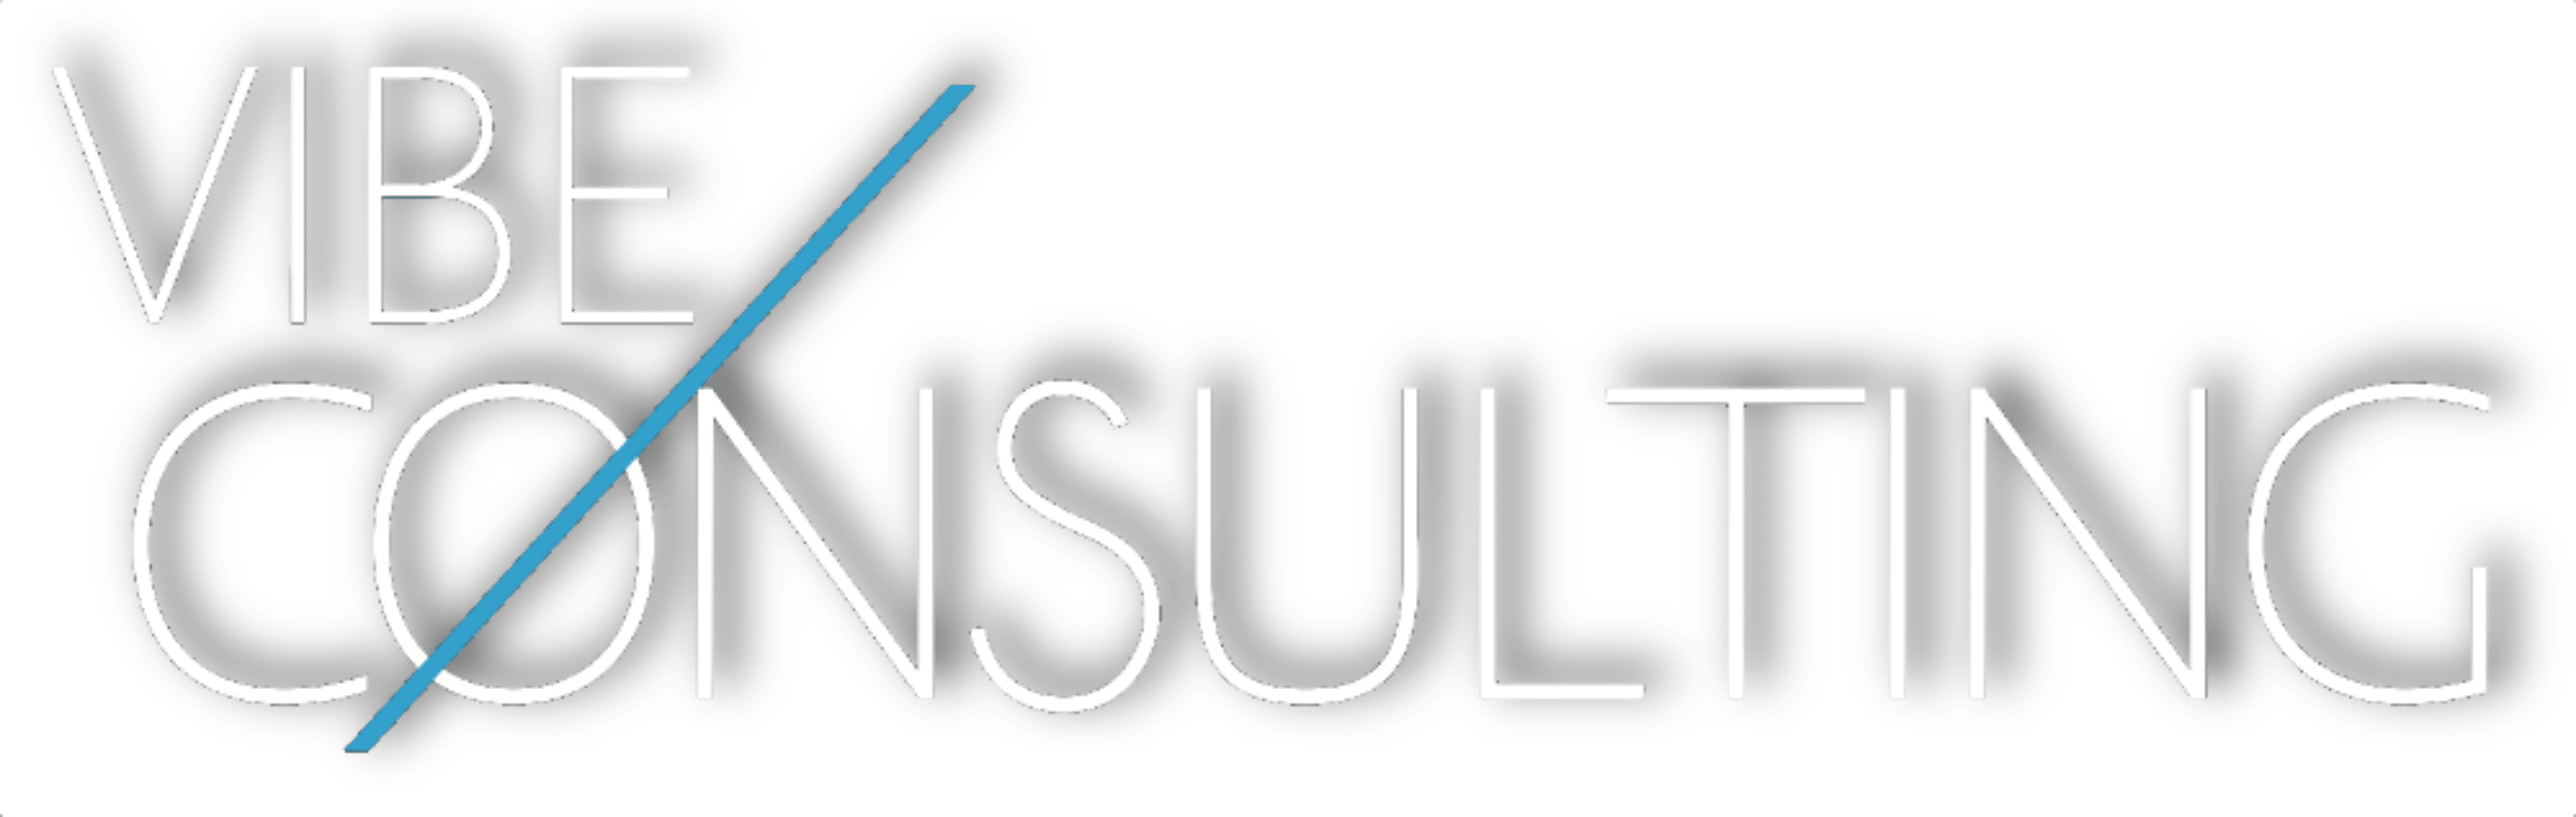 Vibe Consulting – Fashion Business Consulting